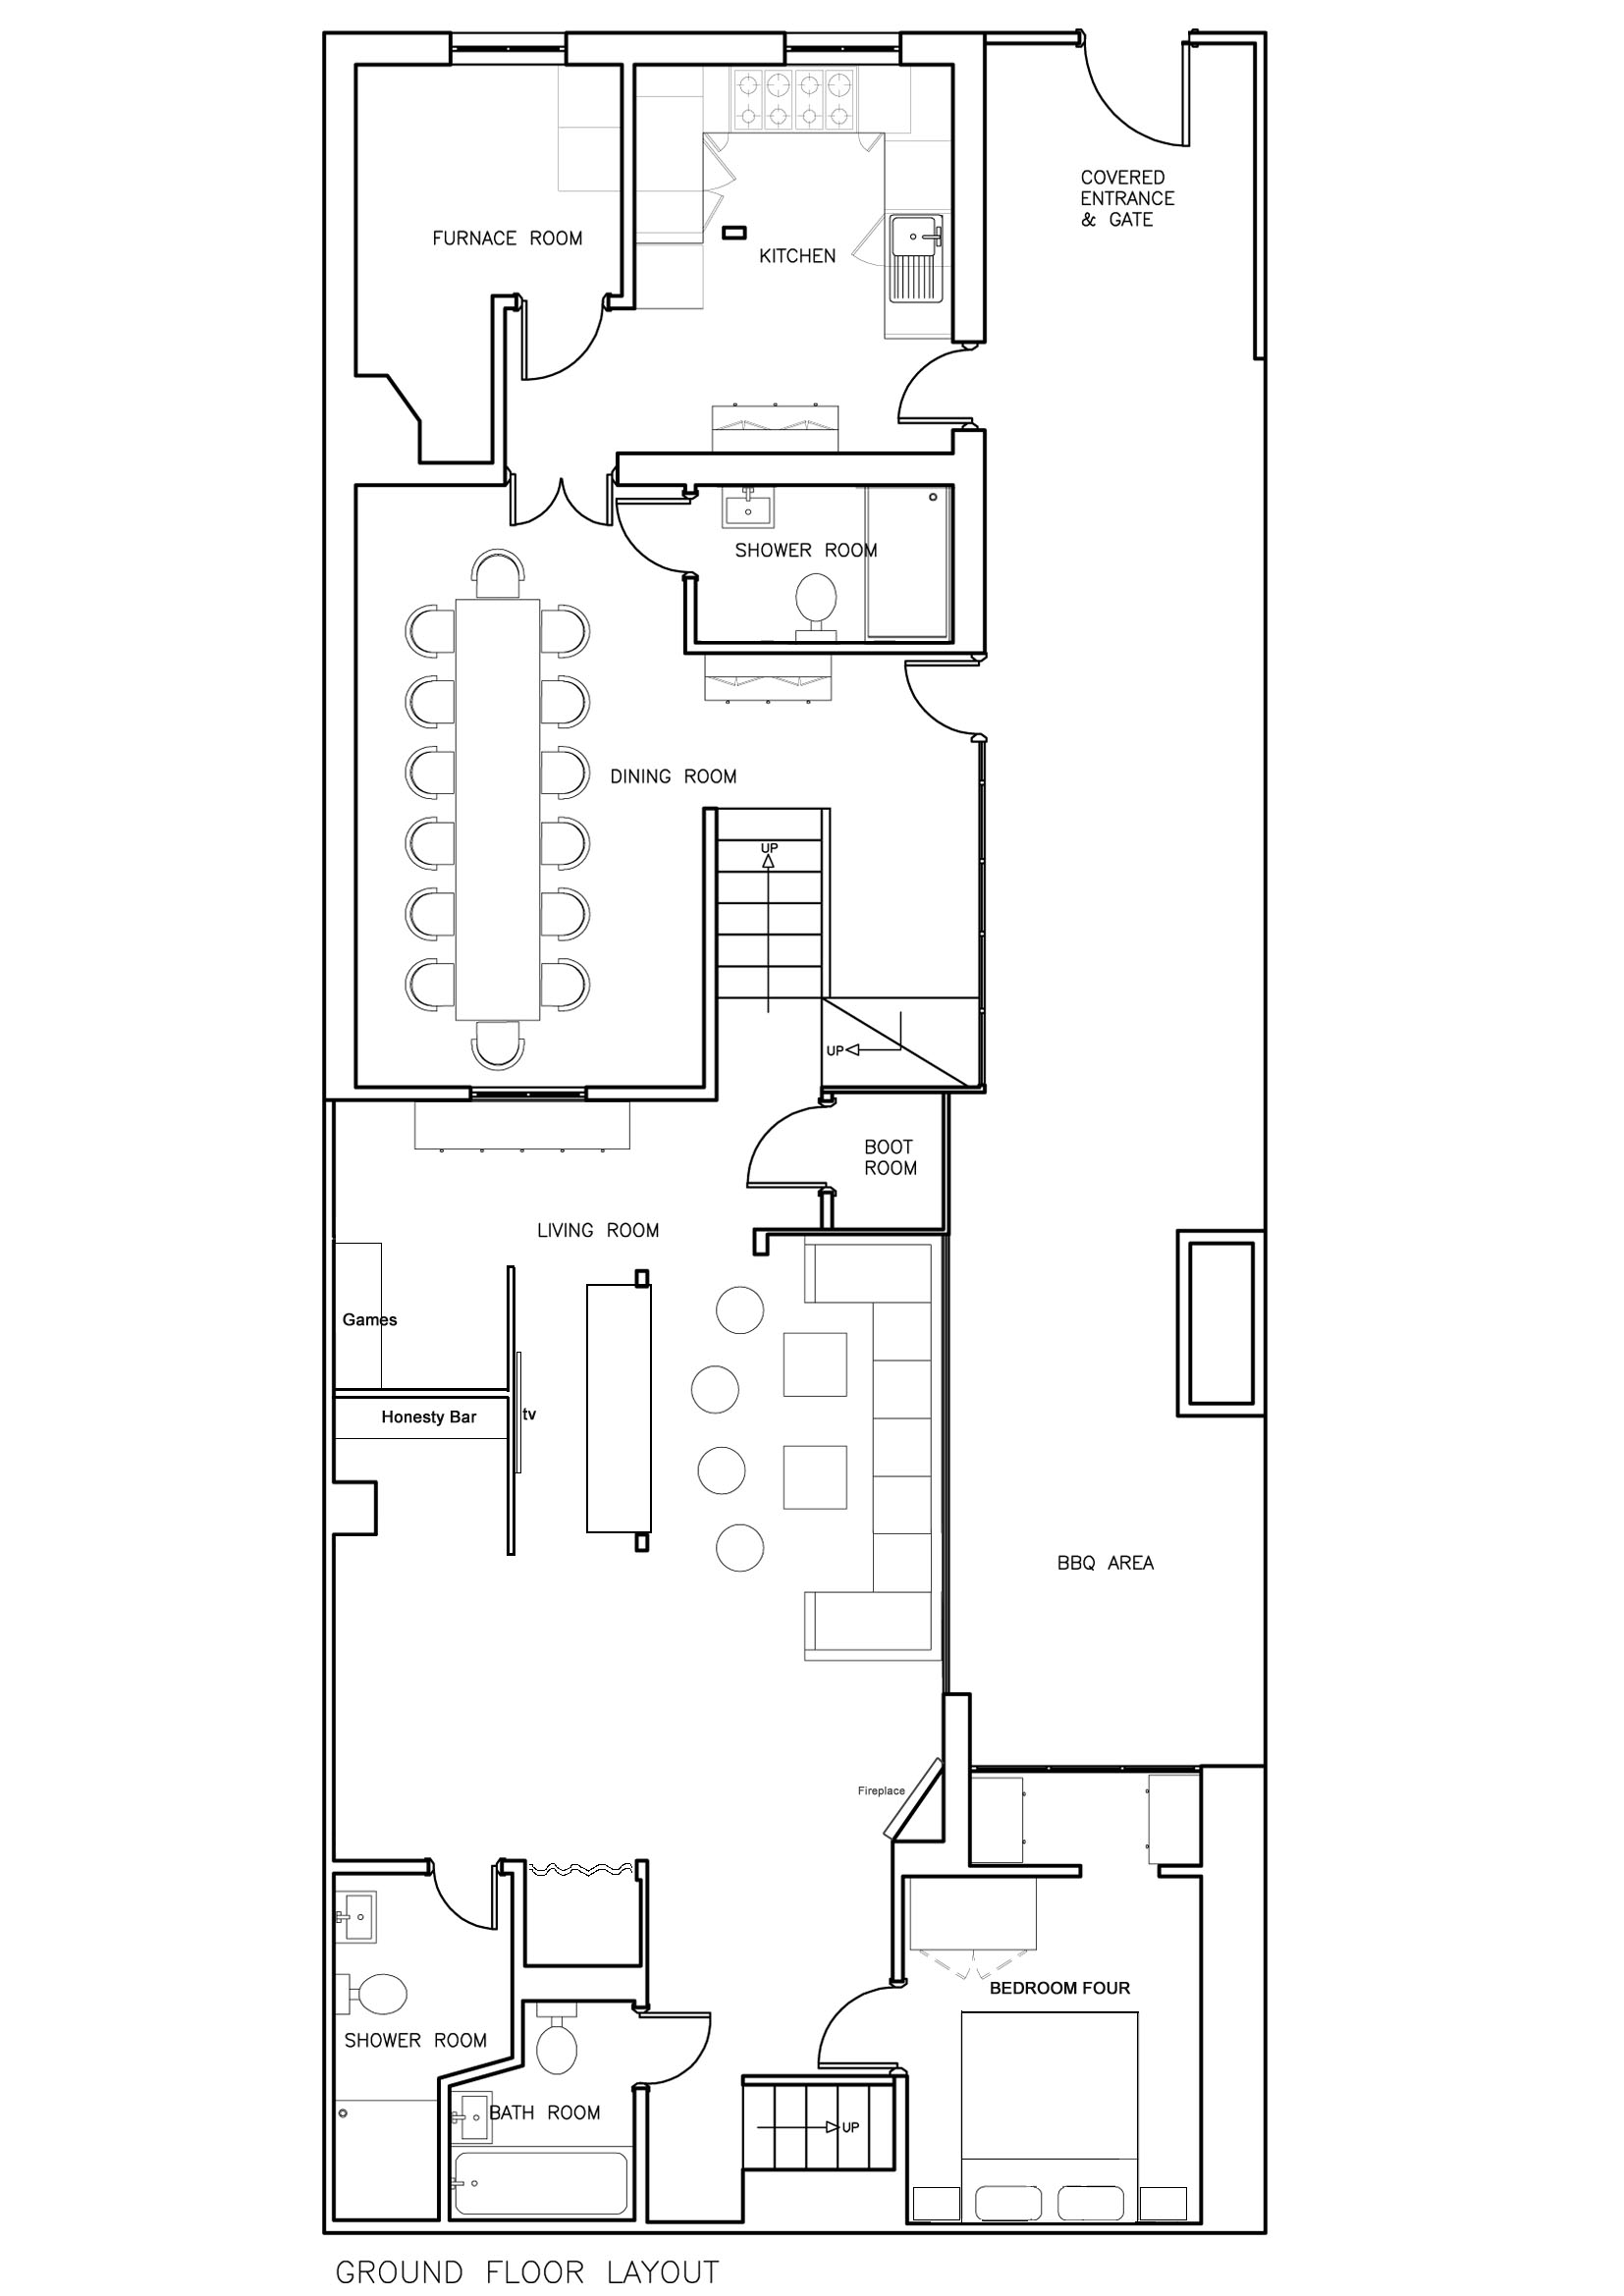 25 Ground Floor House Plan Ideas To Remind Us The Most